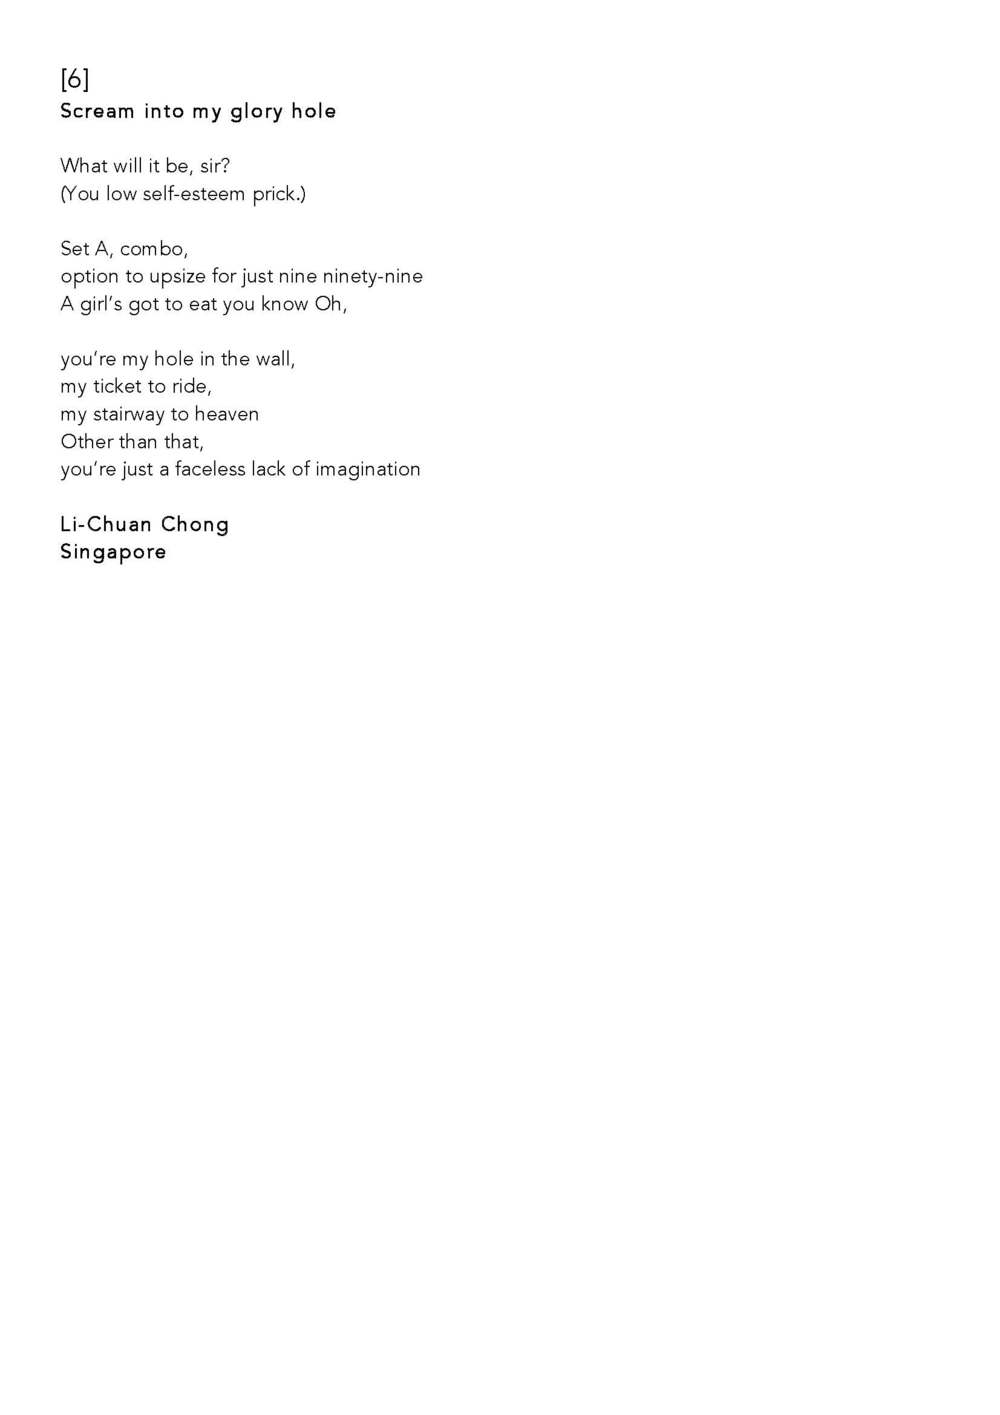 Poetry Collection - Everyone can Poetry _ For 12 May 2014 - R2_Page_06.jpg